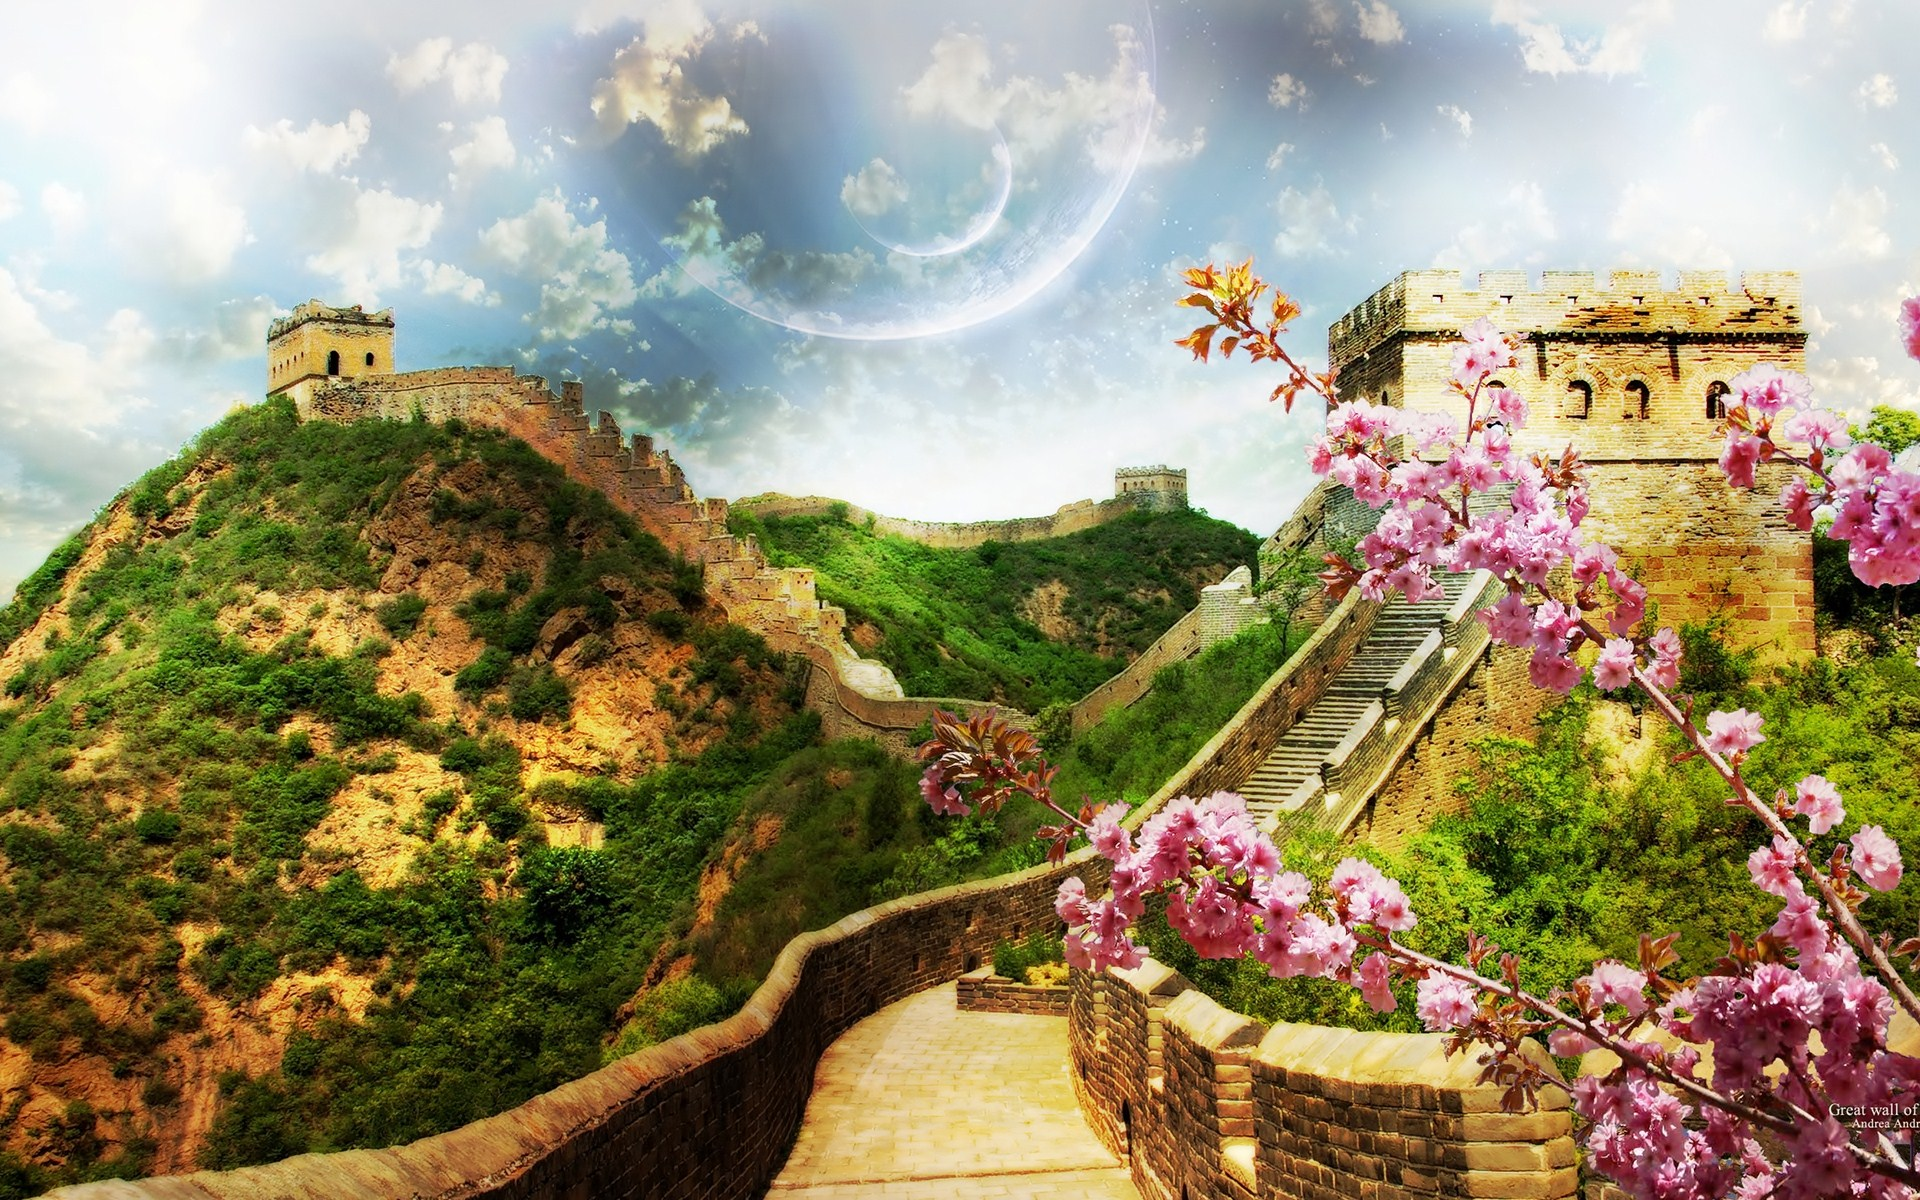 1 Great Wall Of China HD Wallpapers